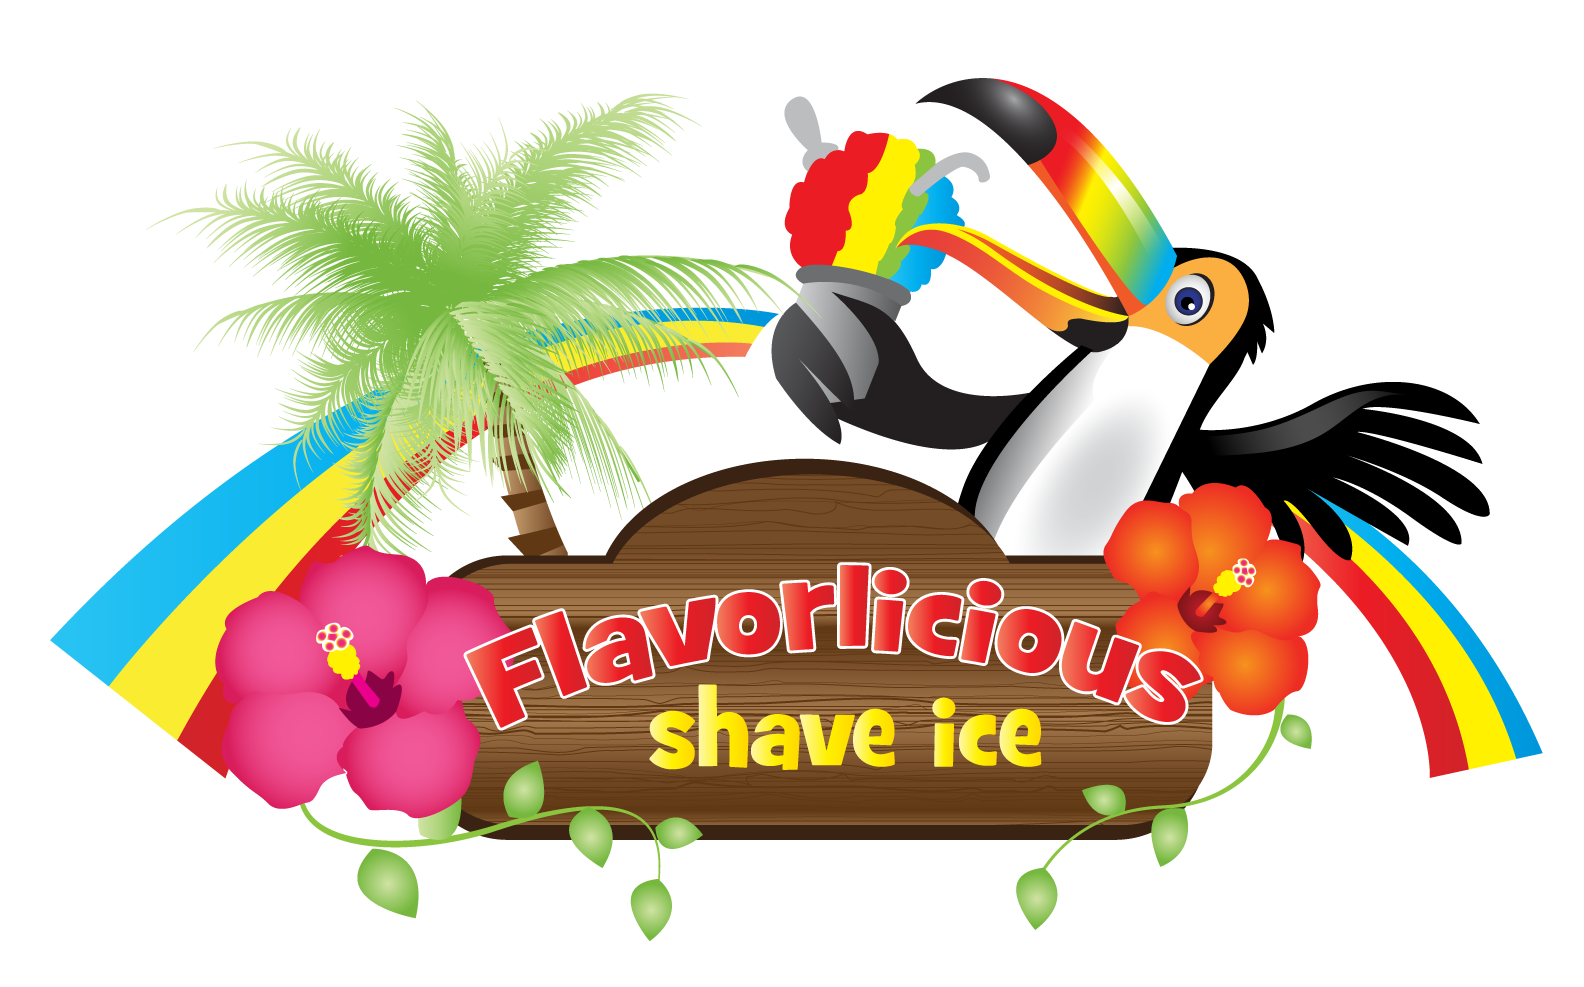 Ice clipart shave ice. Flavorlicious